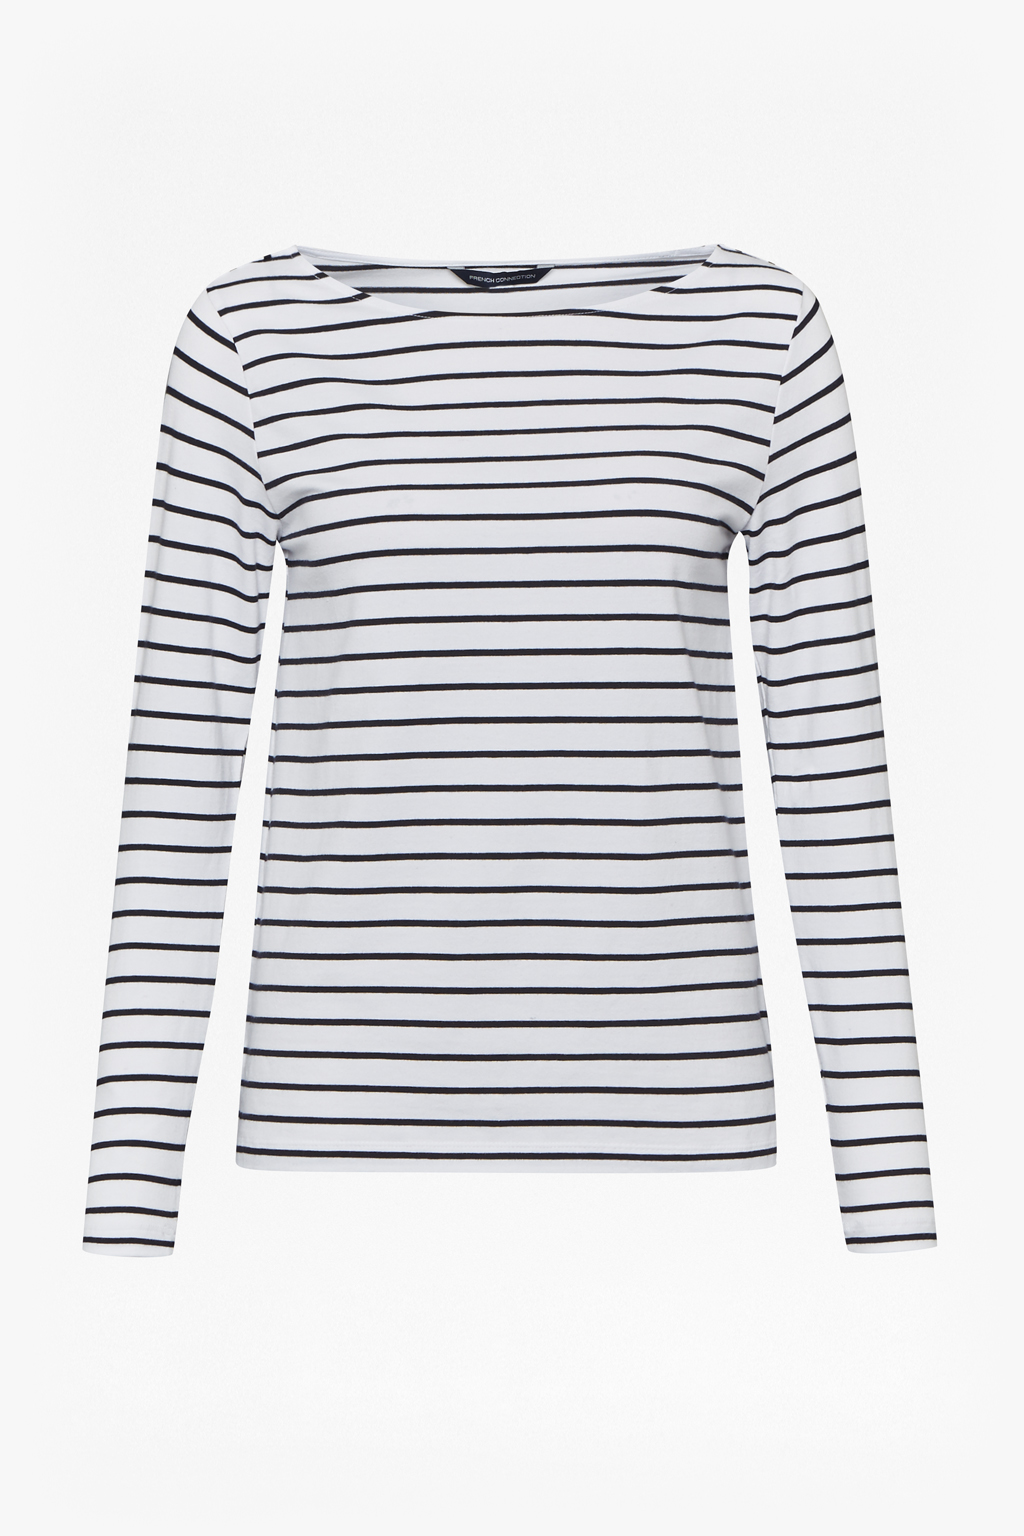 French Connection Tim Tim Long Sleeve Striped Top Free Shipping Outlet Locations Discount Real Looking For Sale Online rGewLsG6Q